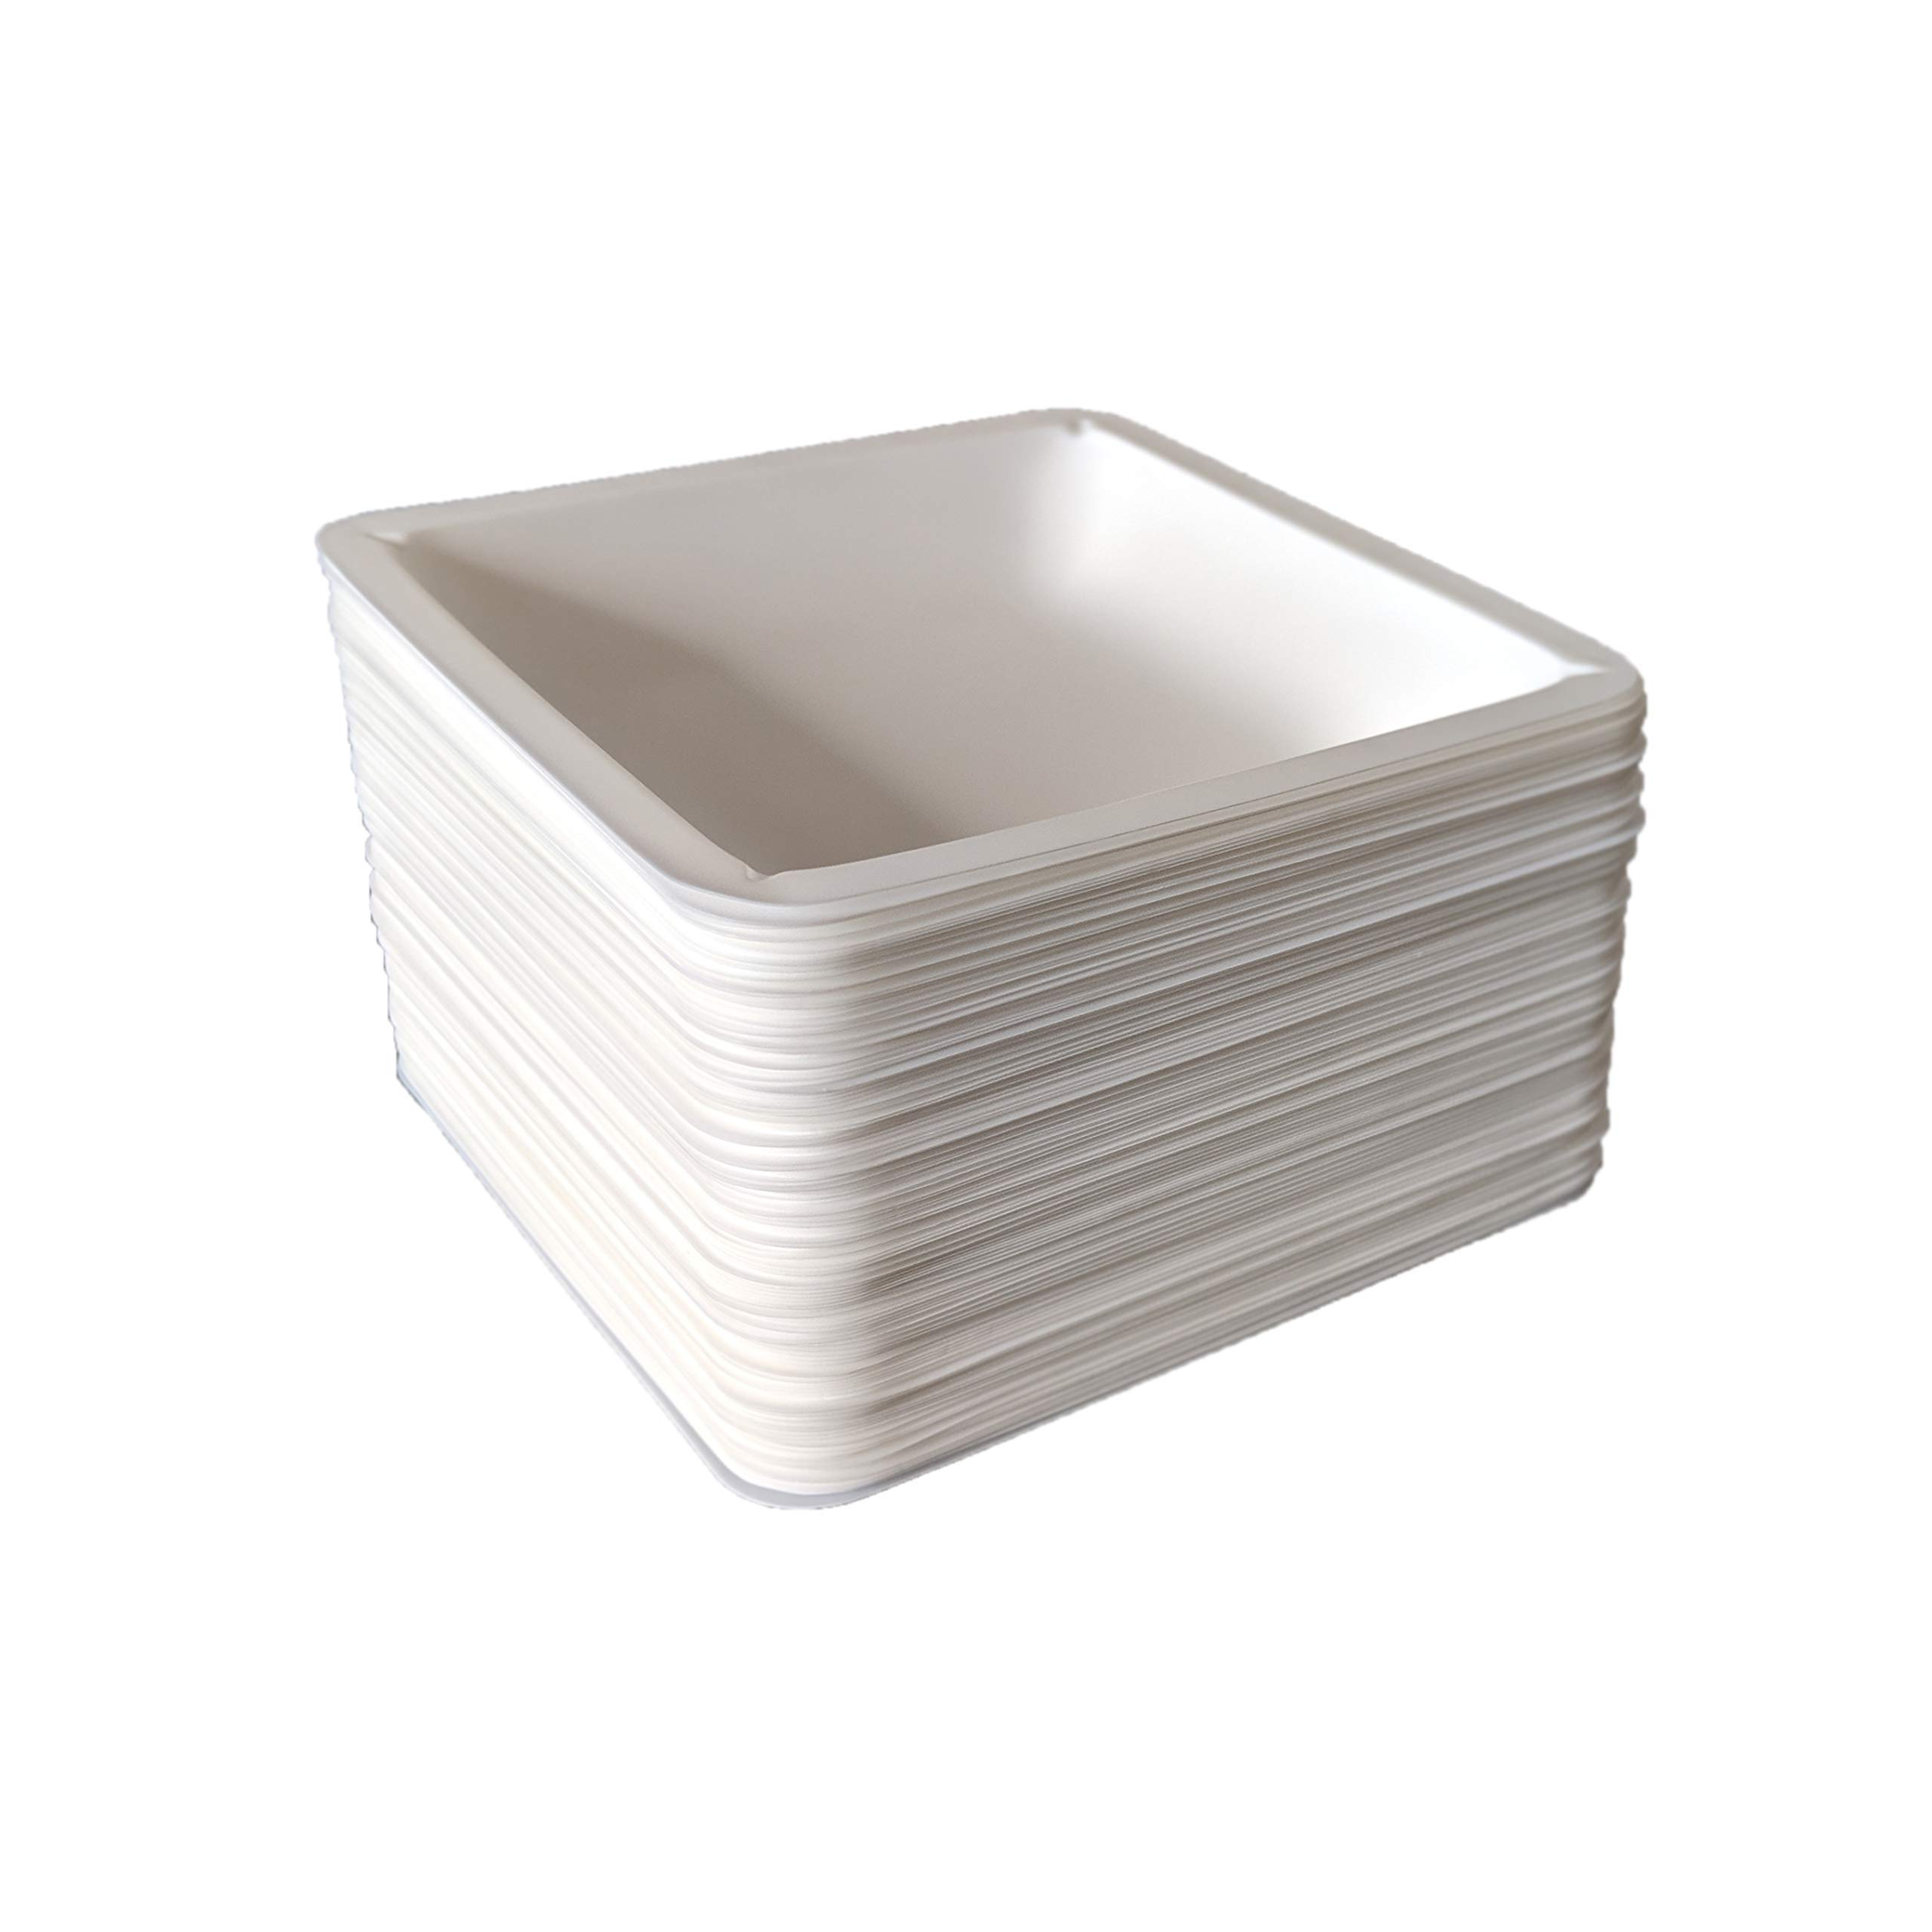 Plastic Square Weigh Boats, Large Dish (140 mm x 140 mm x 22 mm) [Pack of 125] by Bartovation